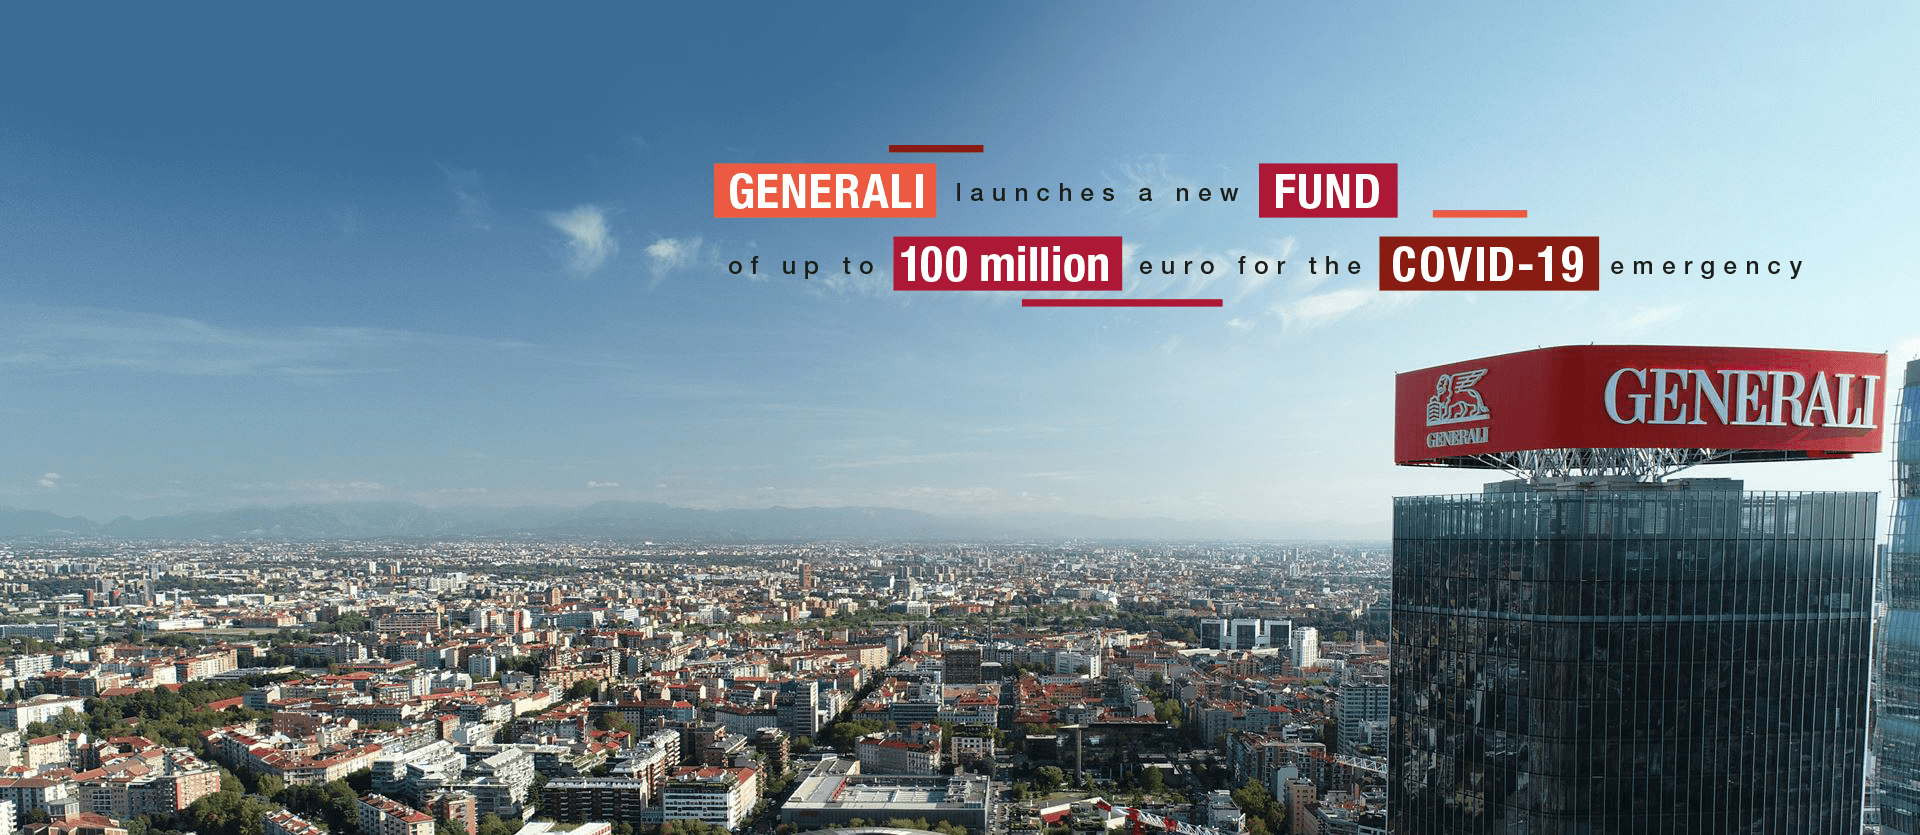 Generali's International Extraordinary Fund